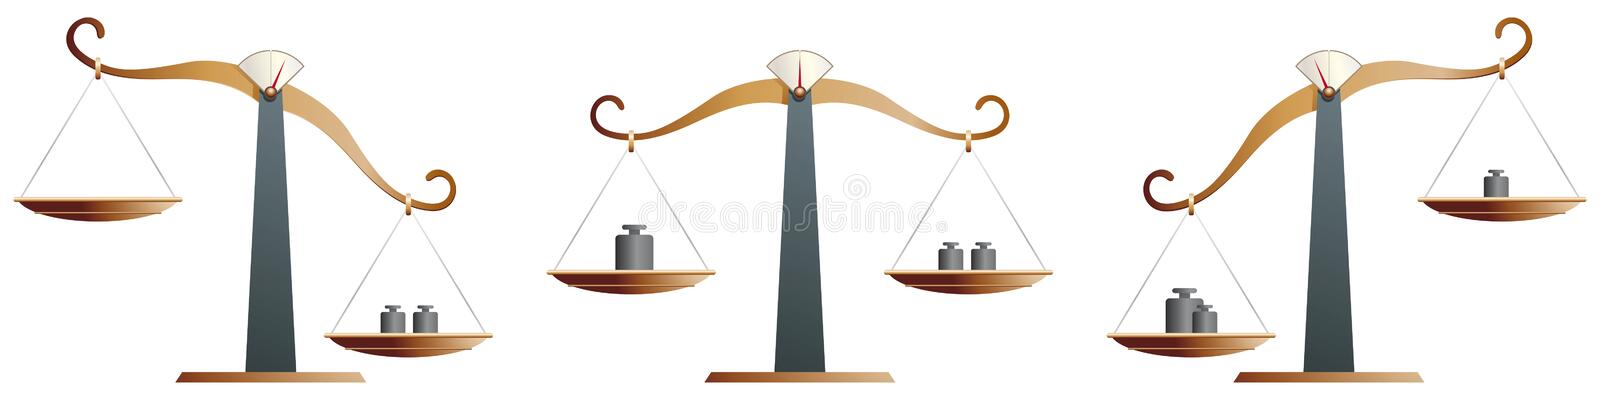 Download Brass Balance Scales Royalty Free Stock Photos - Image: 12115338